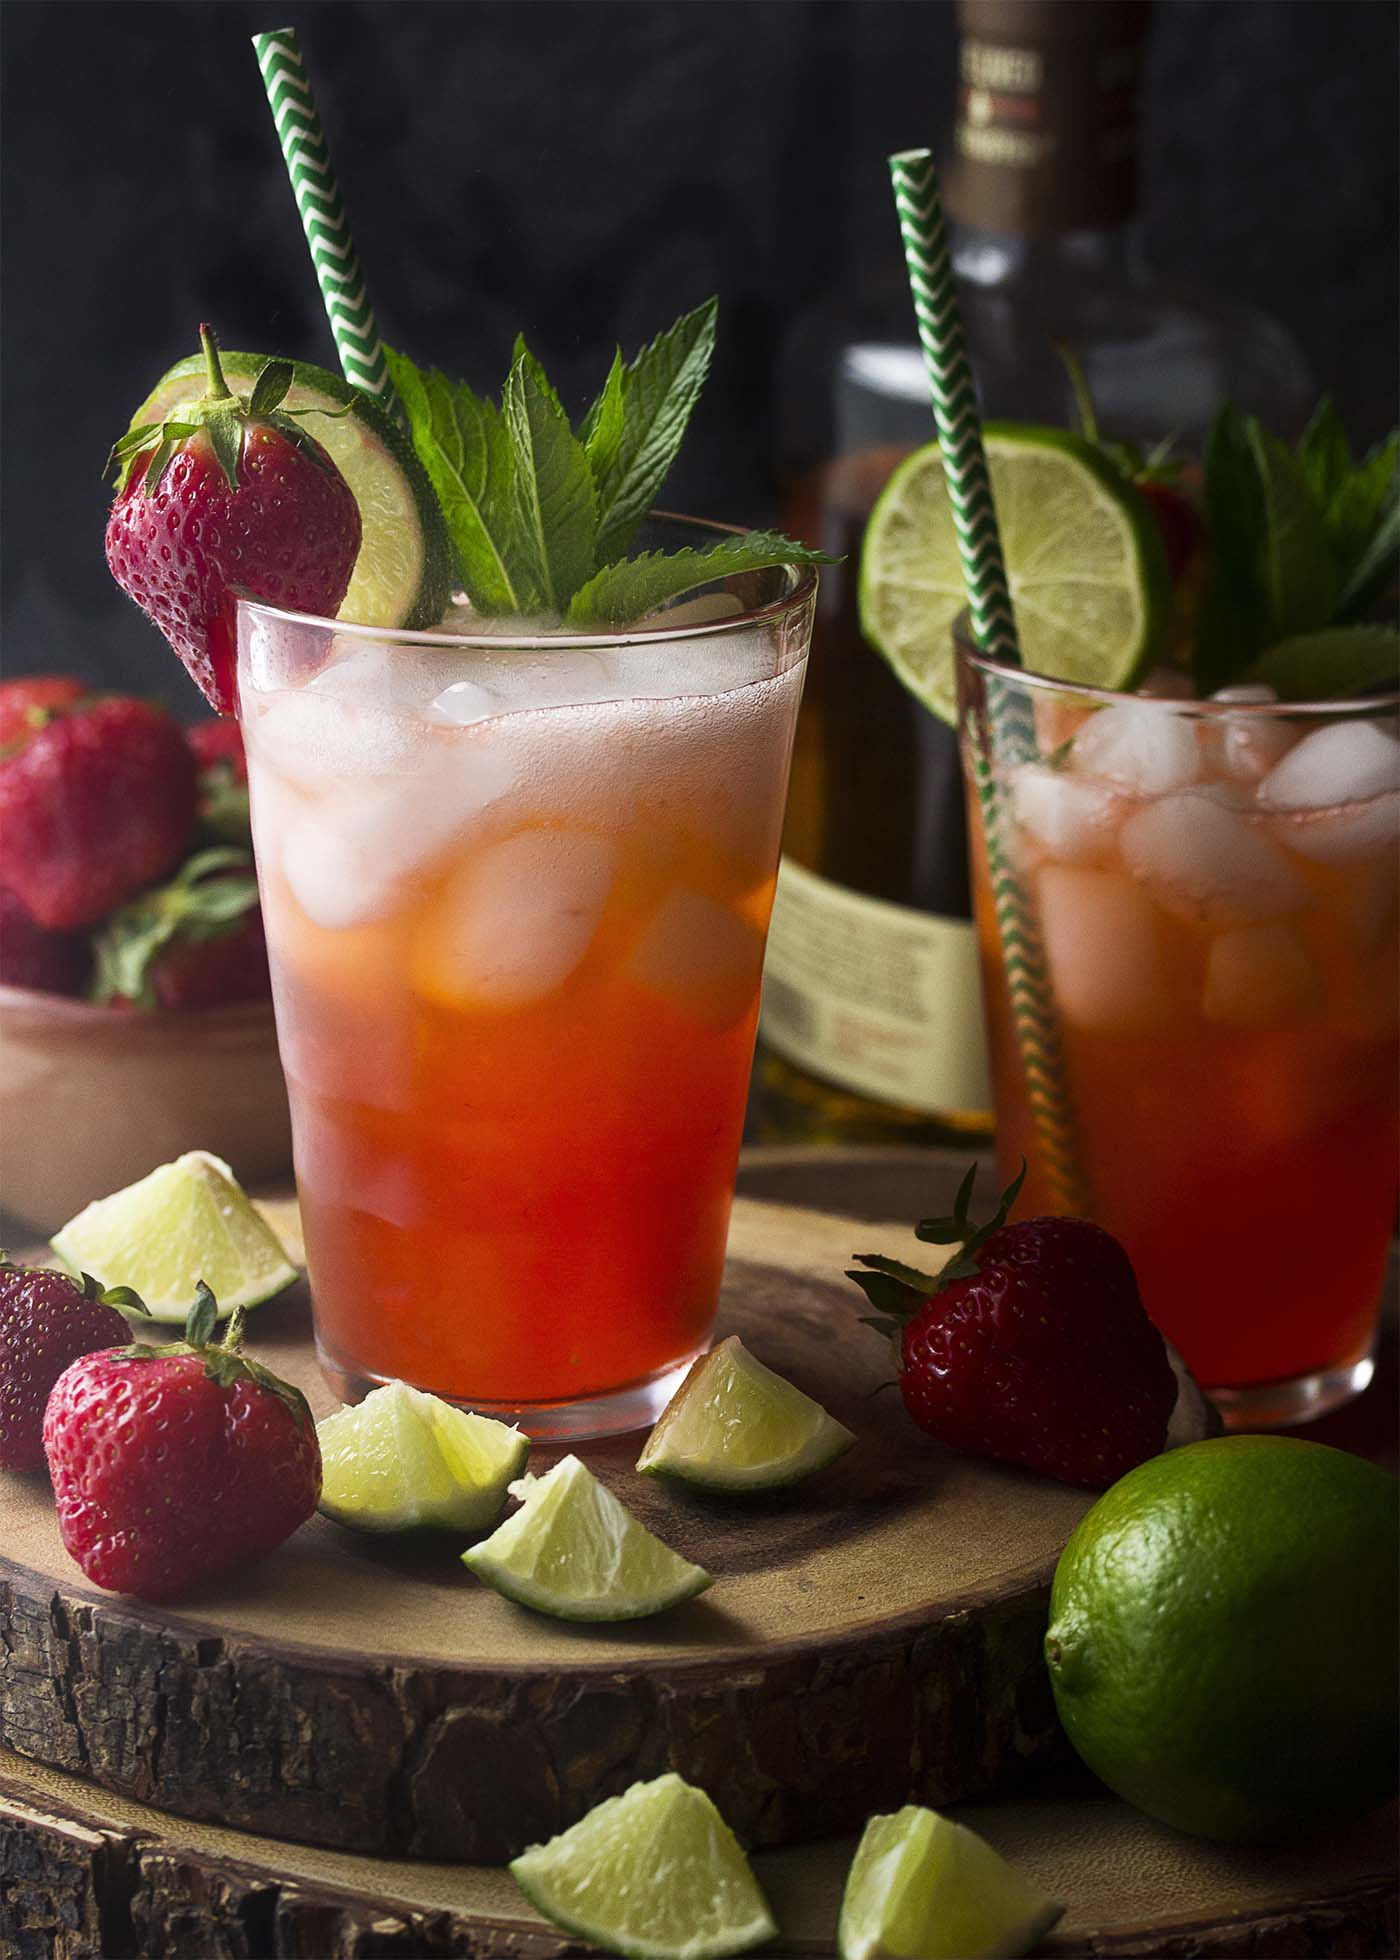 Two fizzy pink mojitos in tall glasses with ice and straws garnished by fruit and mint.